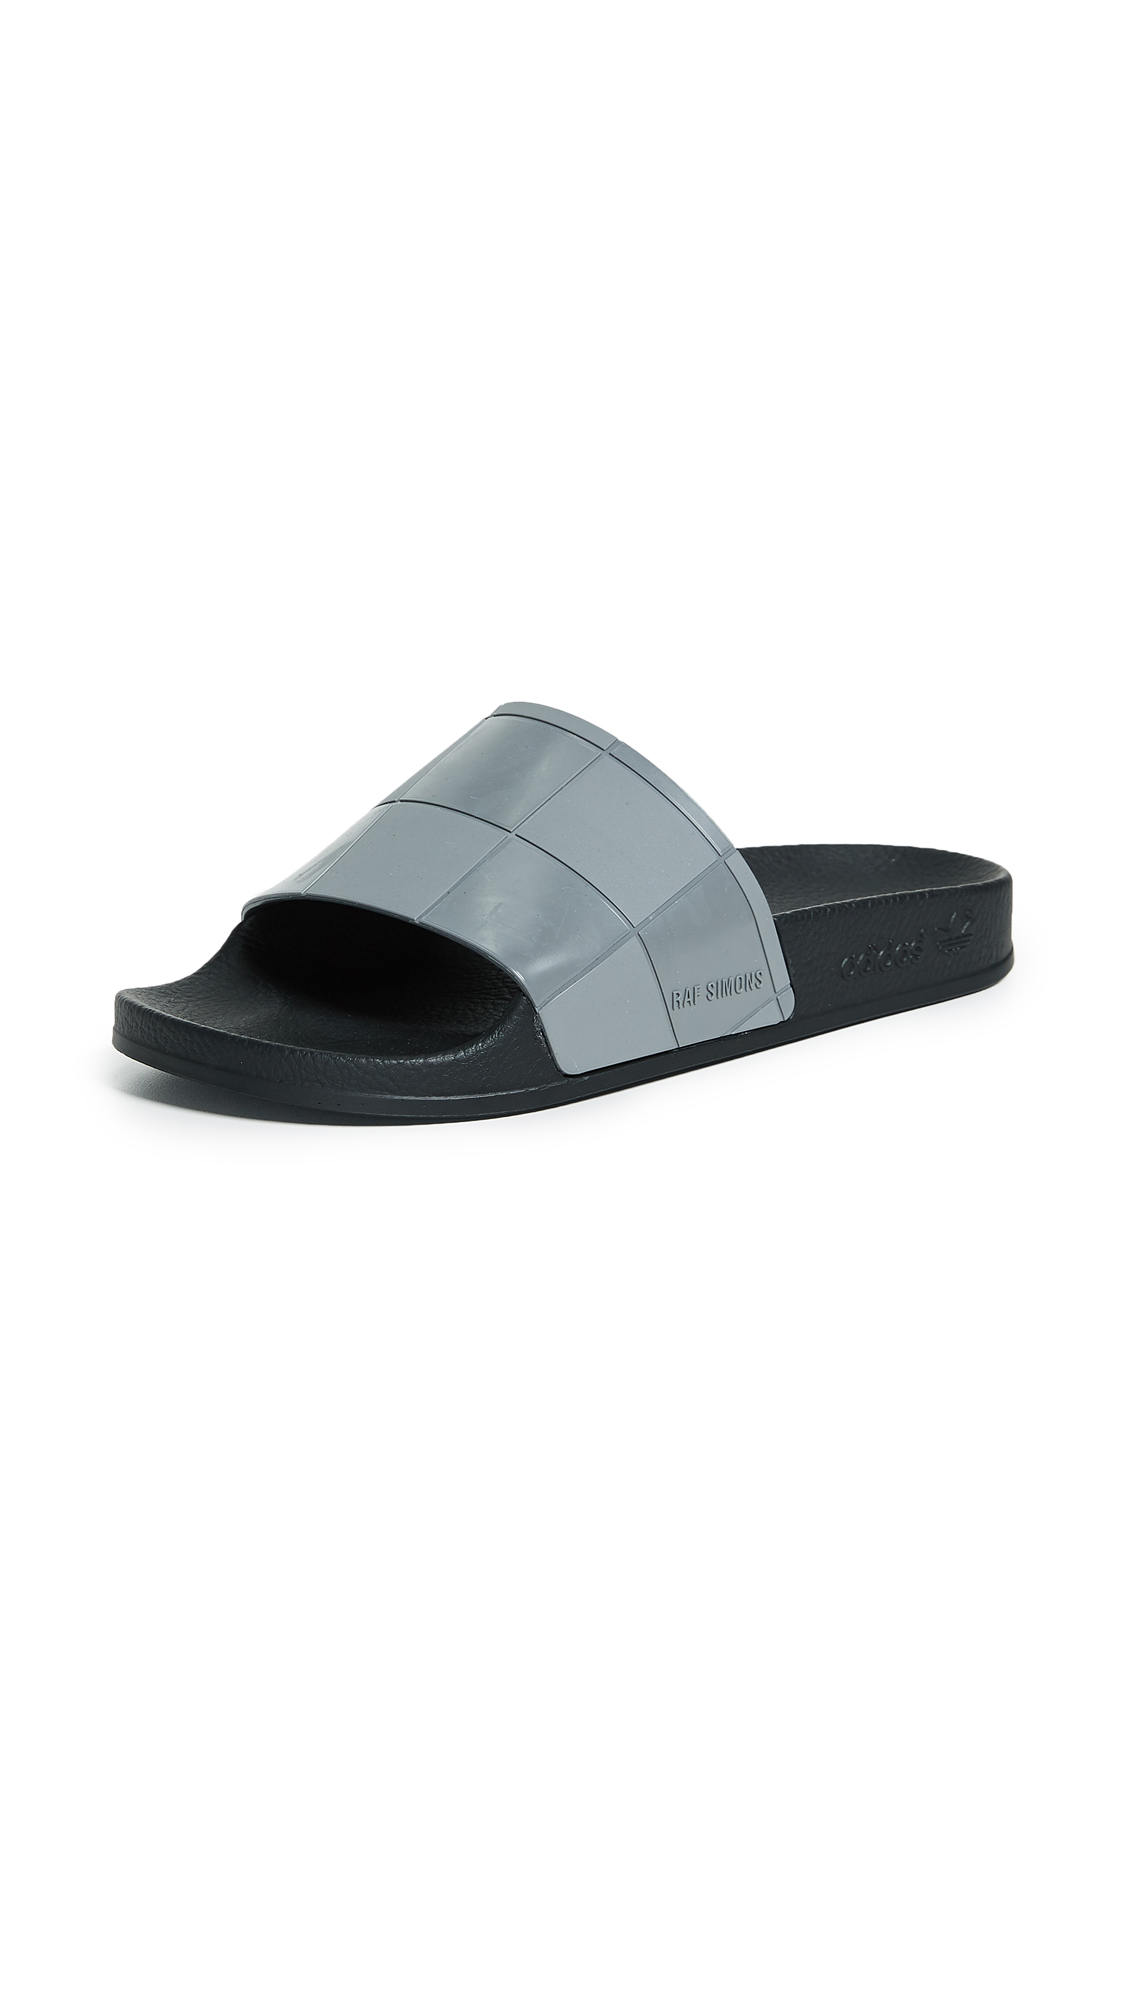 Adidas Raf Simons Adilette Checkerboard Slides - Black/Granite